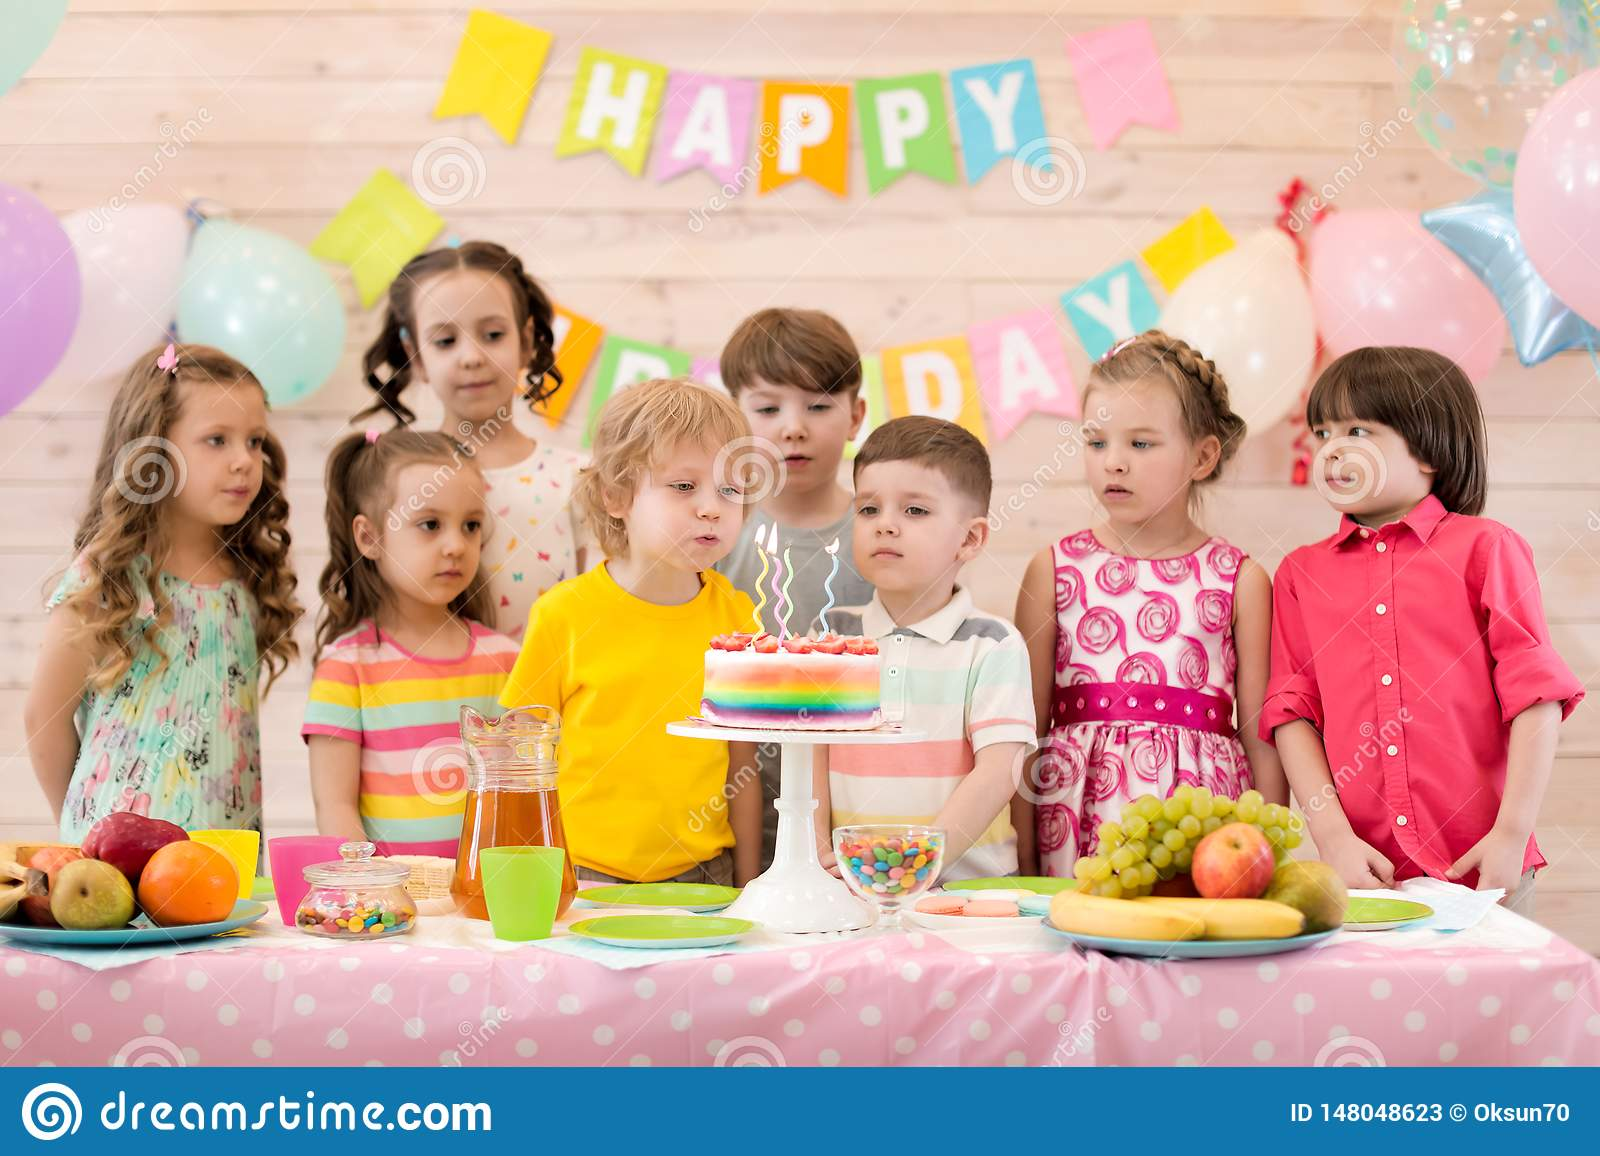 Birthday boy blows festival candles on cake together with friends